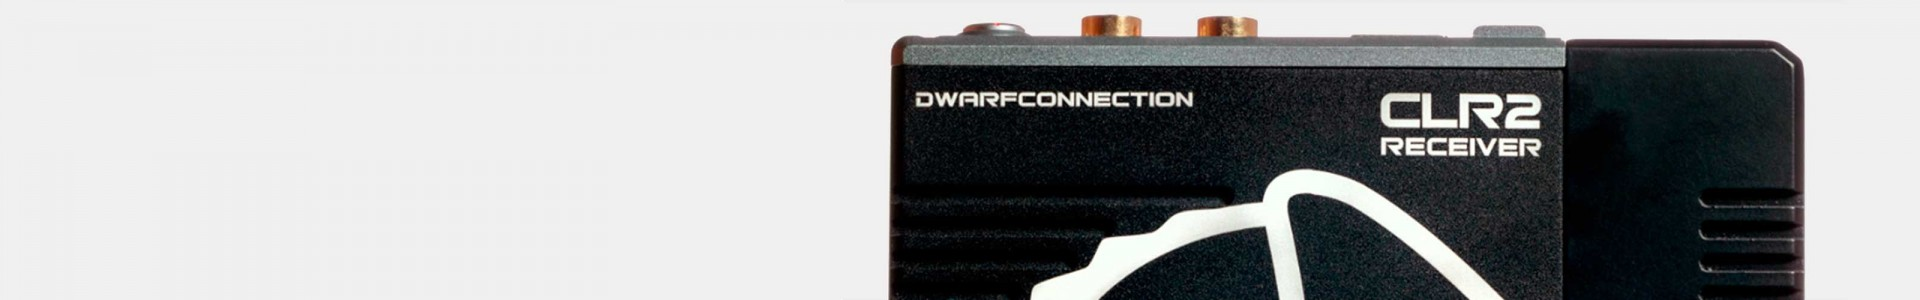 DwarfConnection at Avacab - Official Dealers